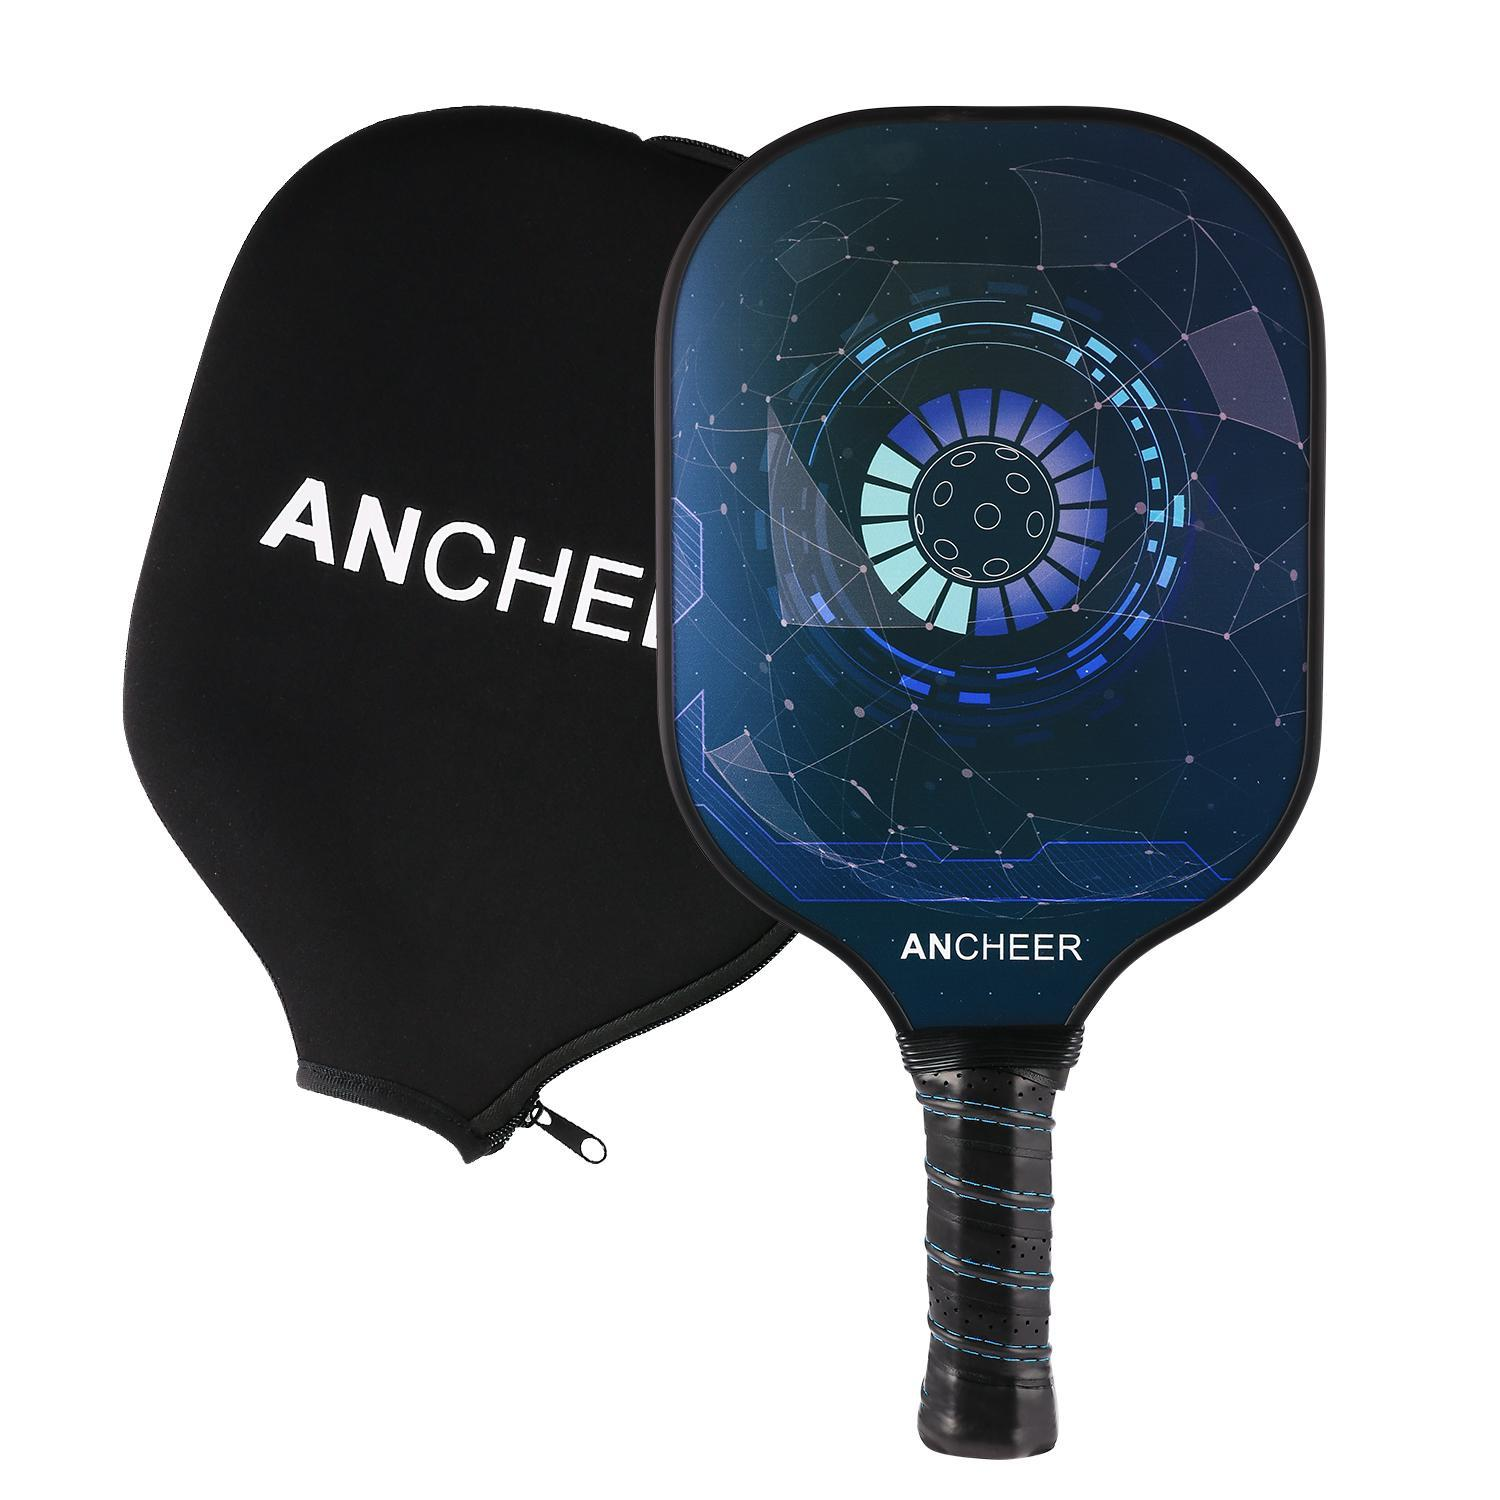 Carbon Fiber Pickleball Racket PP Polymer Honeycomb Composite Core Pickleball Paddle Set BYE